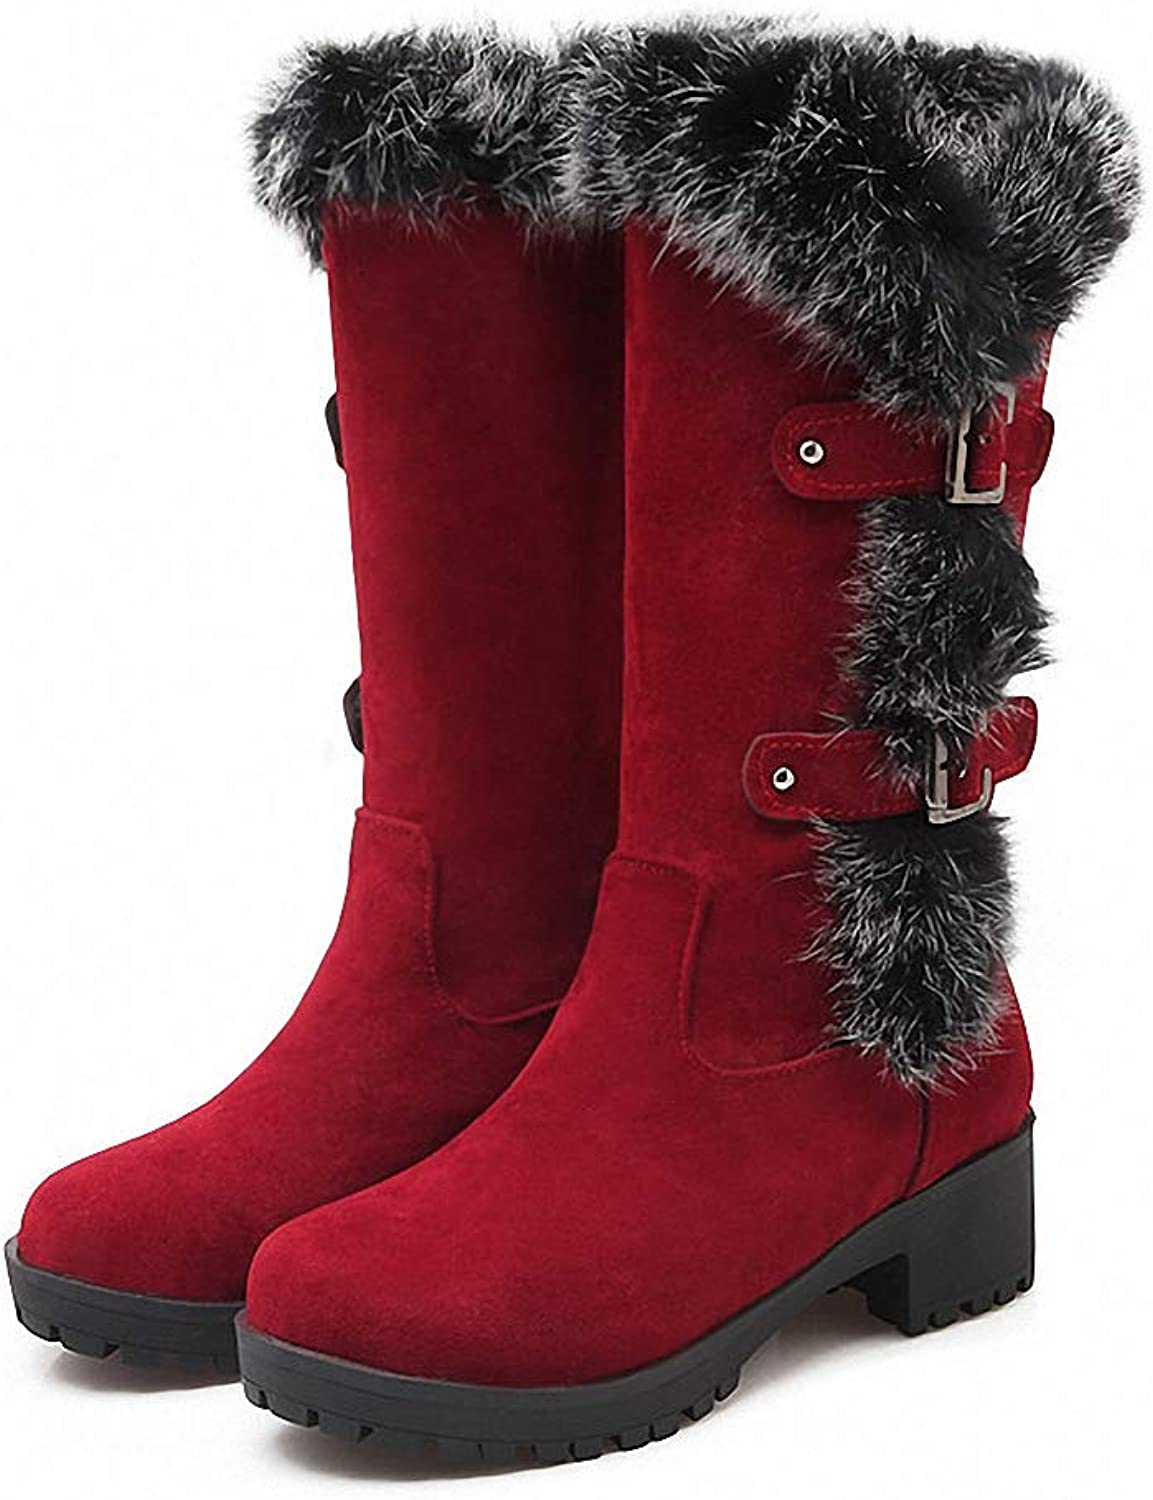 Kyle Walsh Pa Women Classic Boots Warm Fur Non-Slip Square Heels Platform Mid-Calfs Ladies Winter Trendy shoes